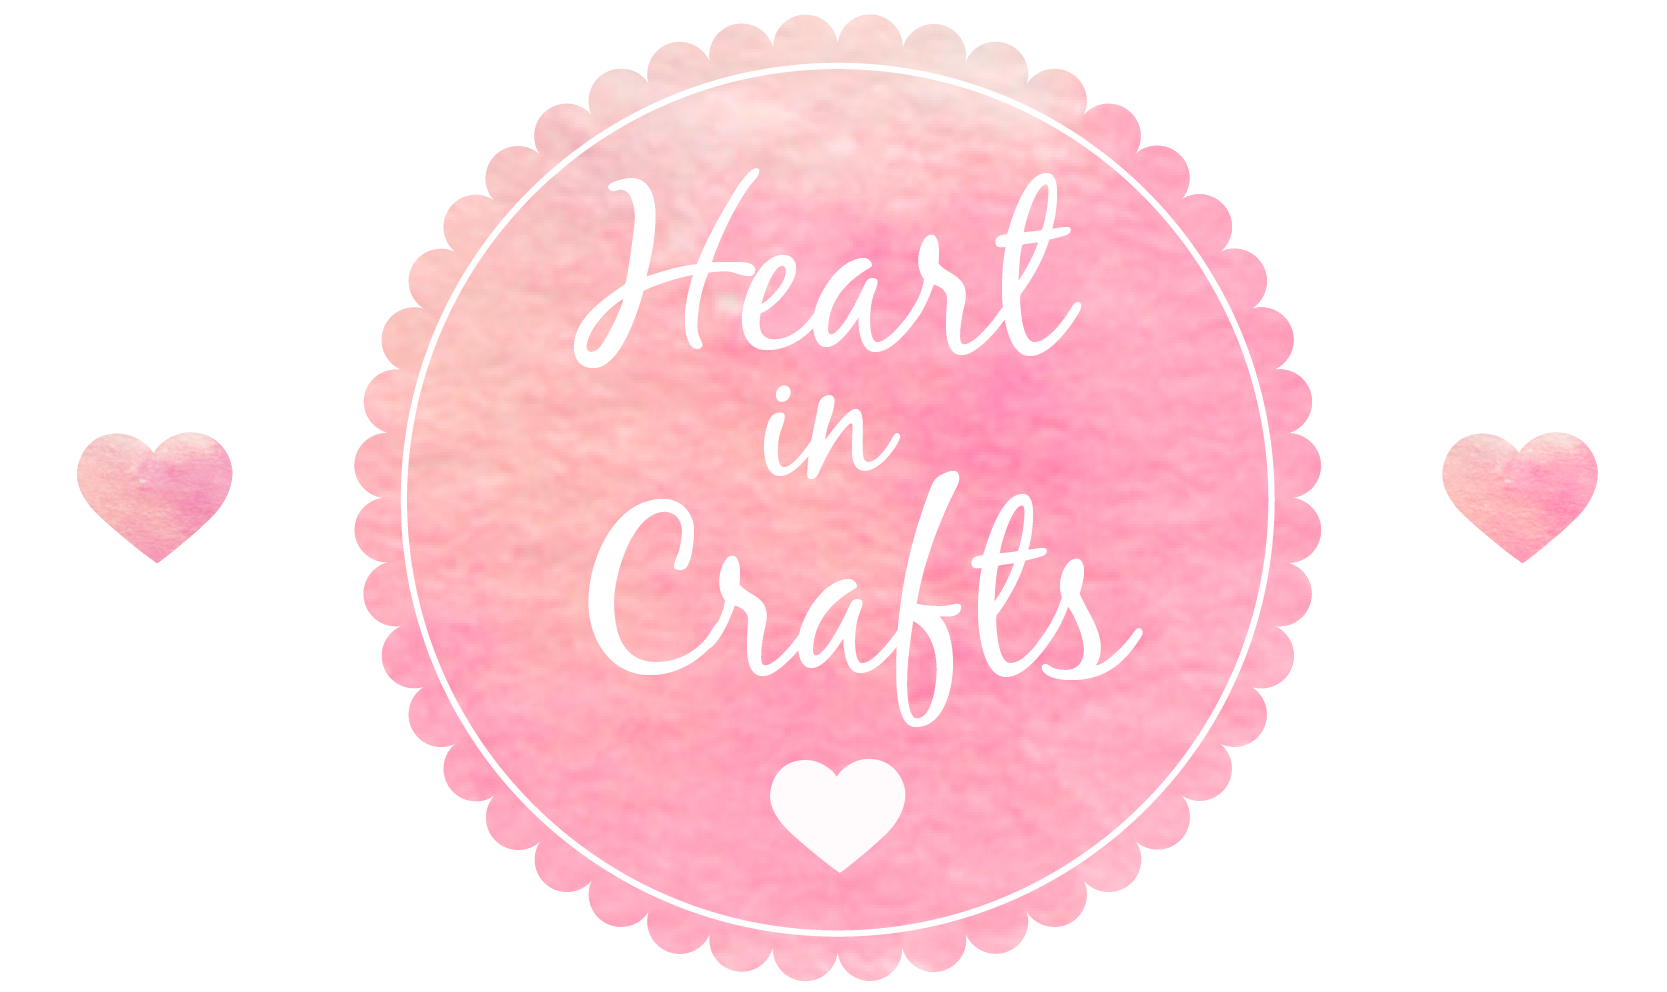 HEART in CRAFTS